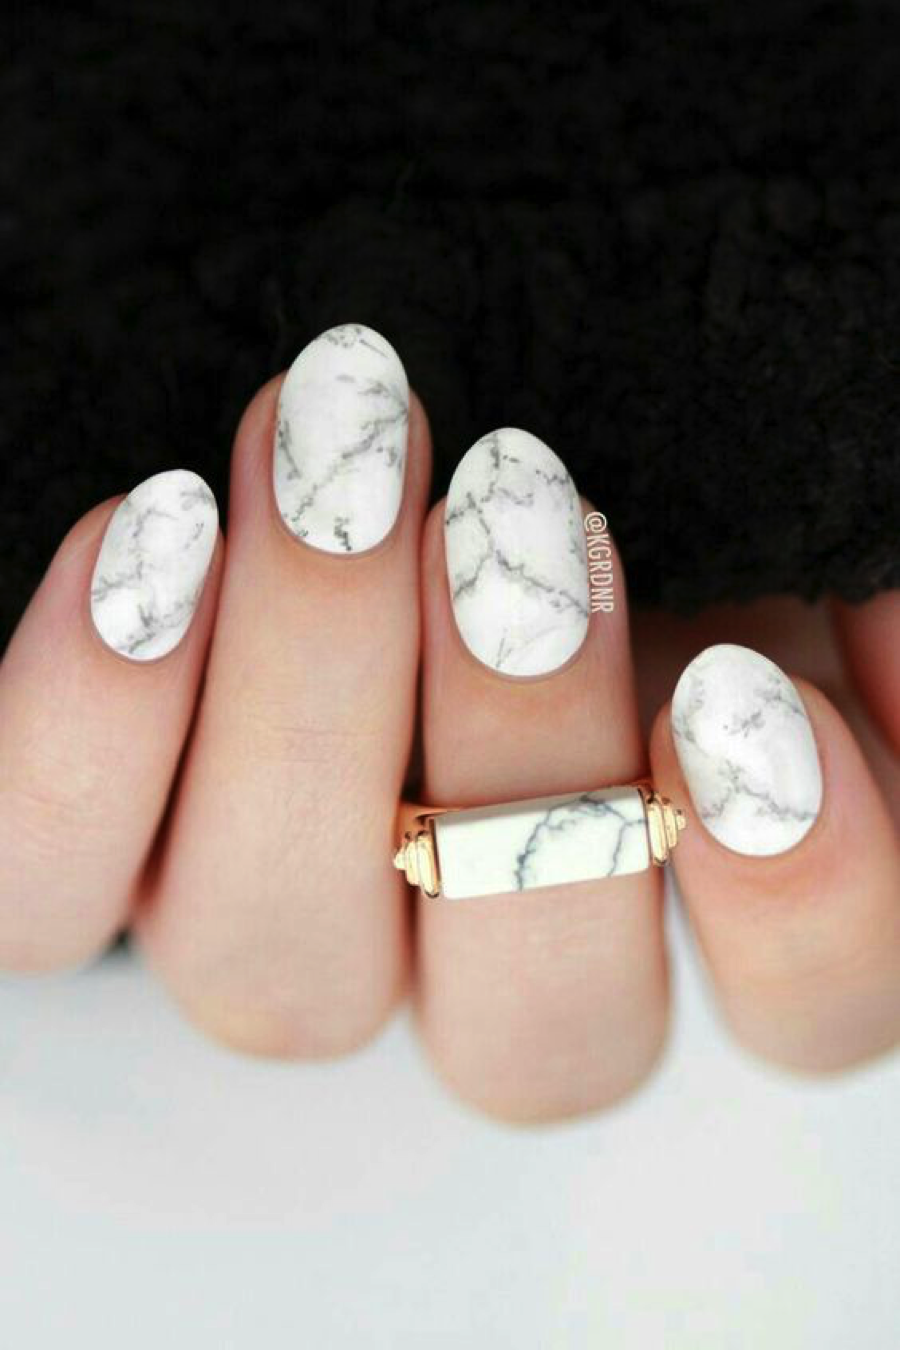 MARBLE NAILS 1.png